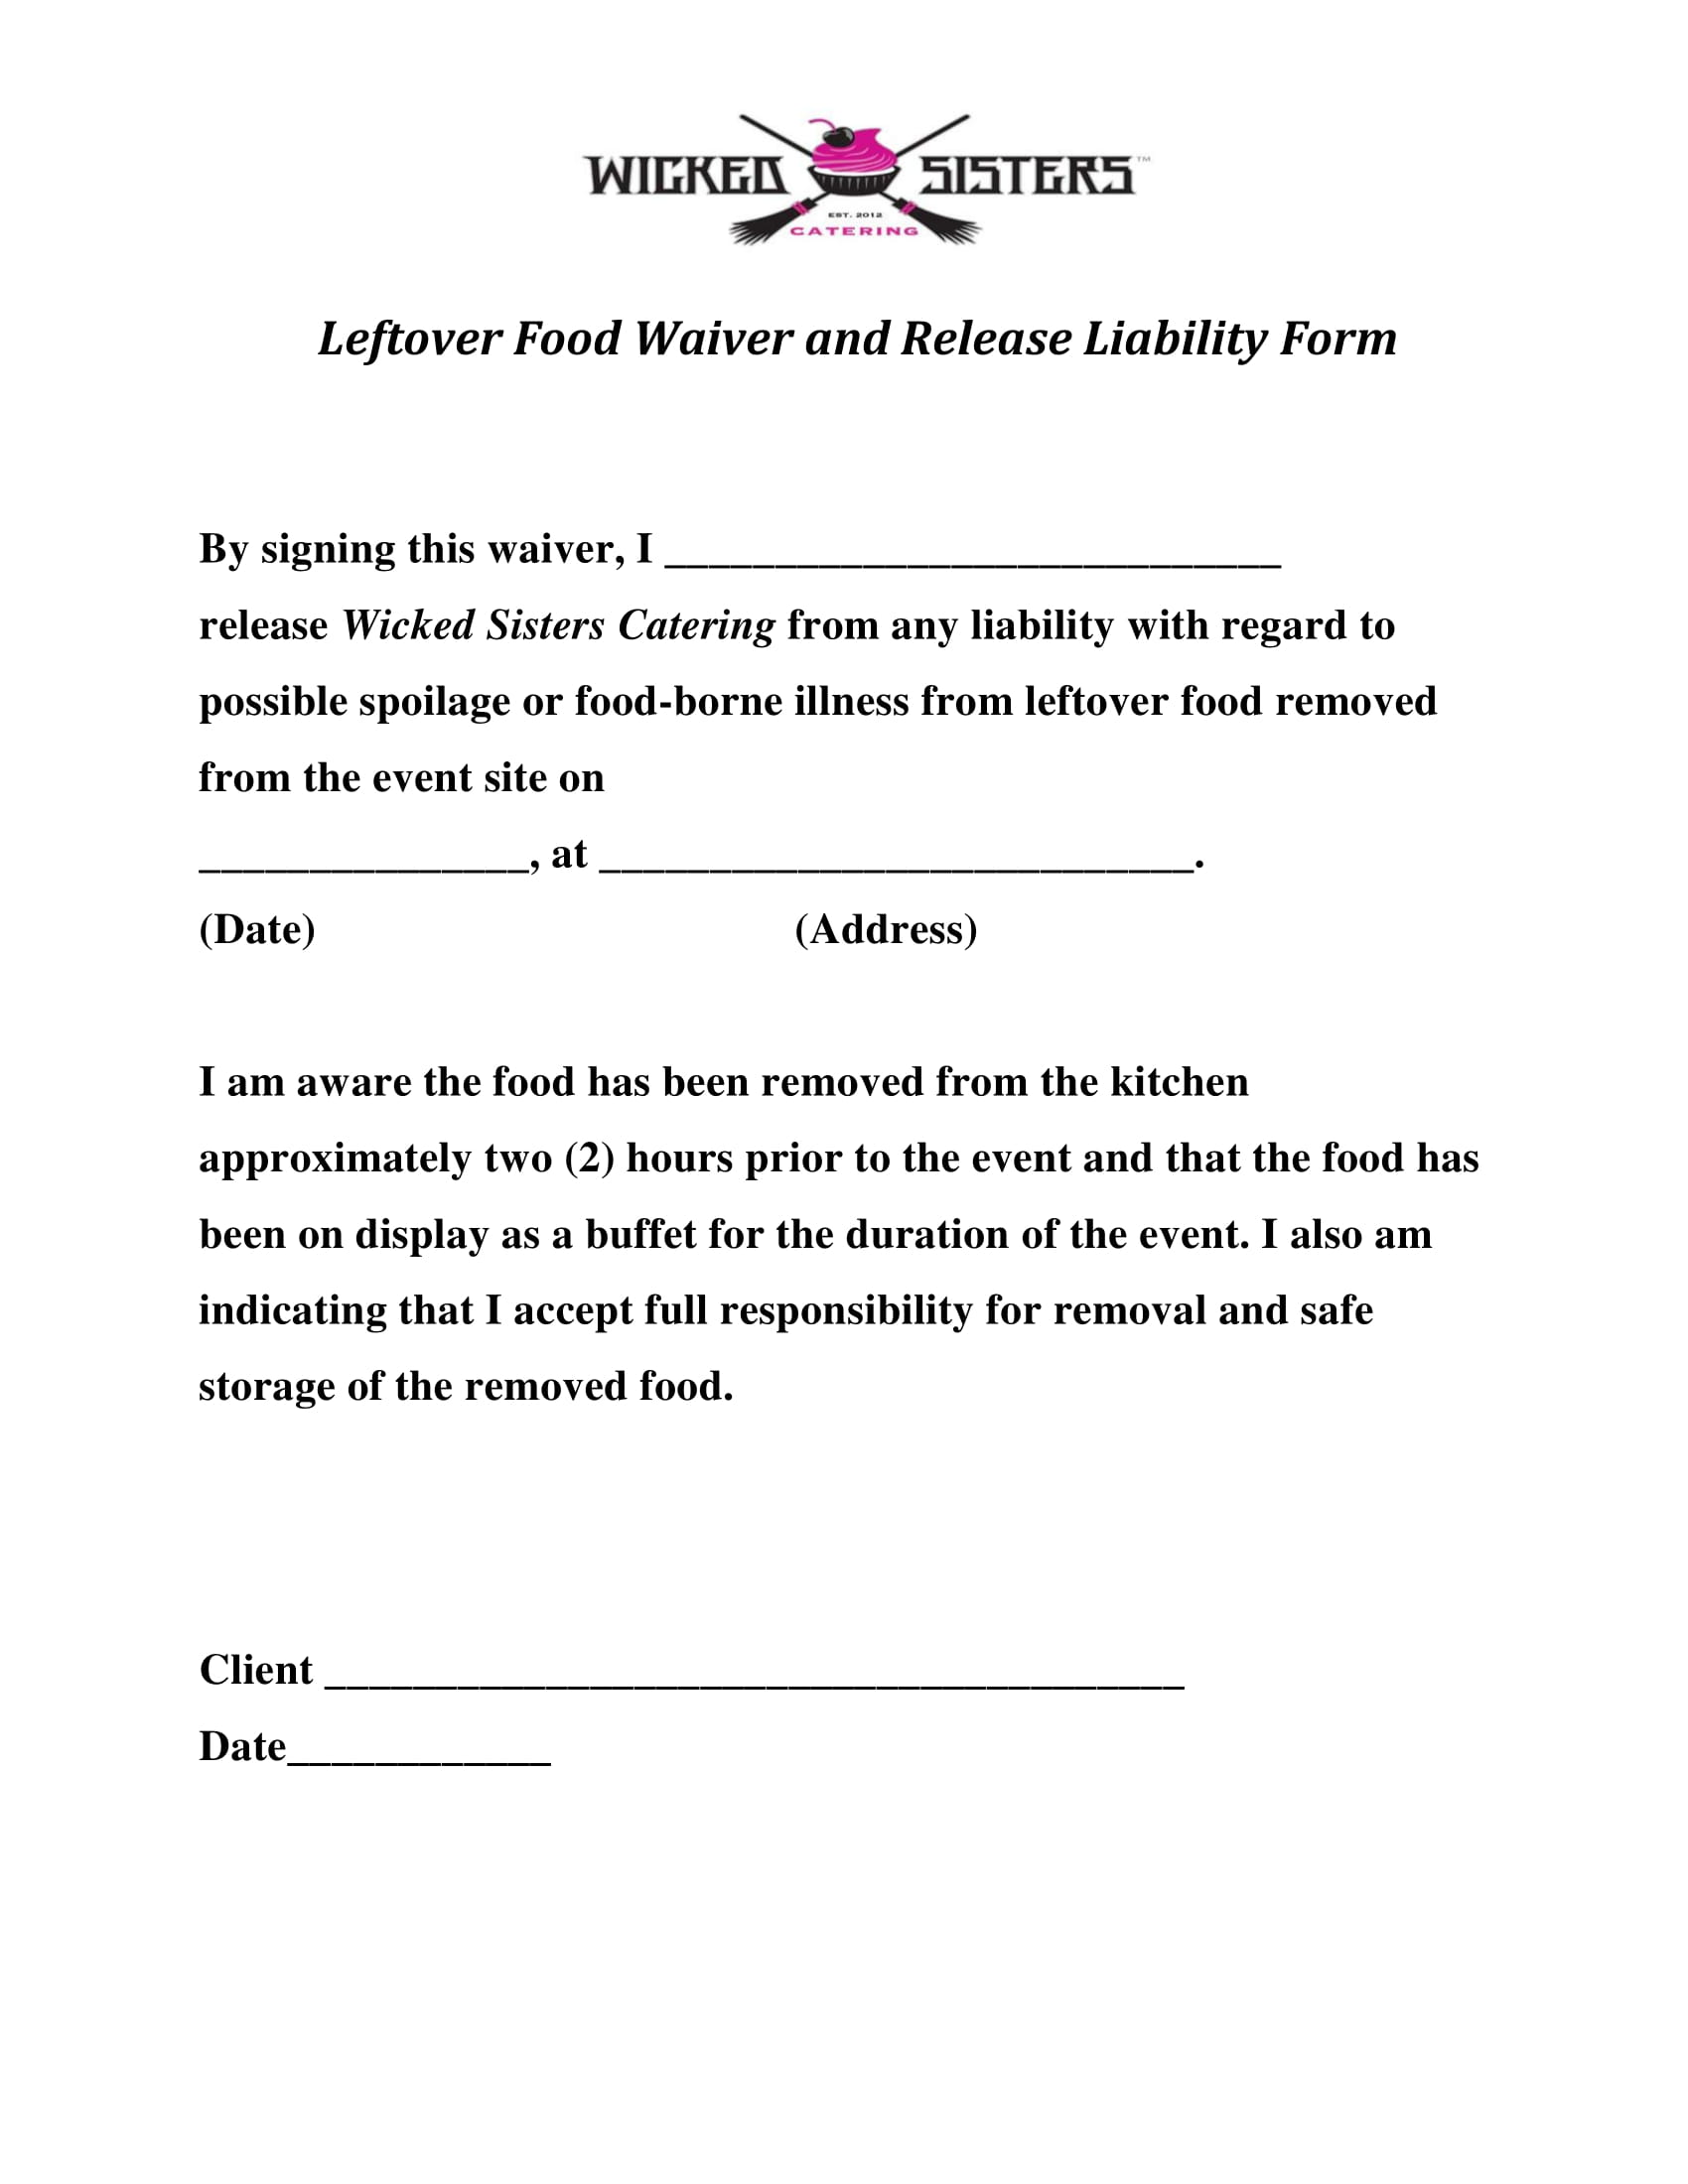 FREE 7 Restaurant Waiver Forms In PDF